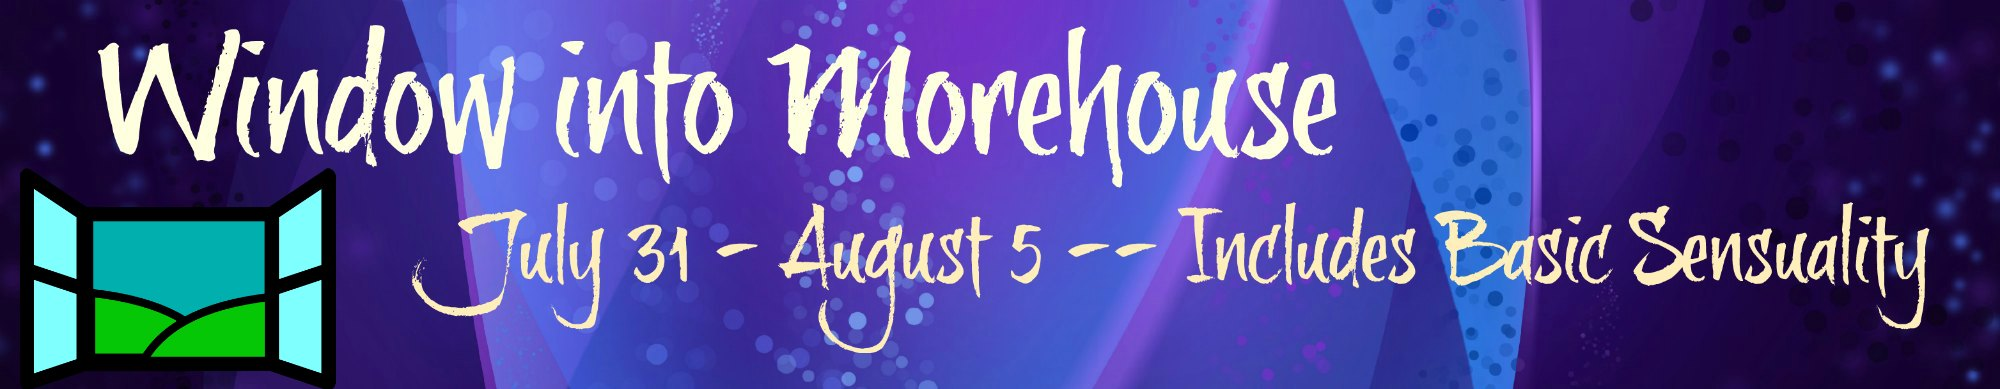 Window into Morehouse - July 31 - August 5